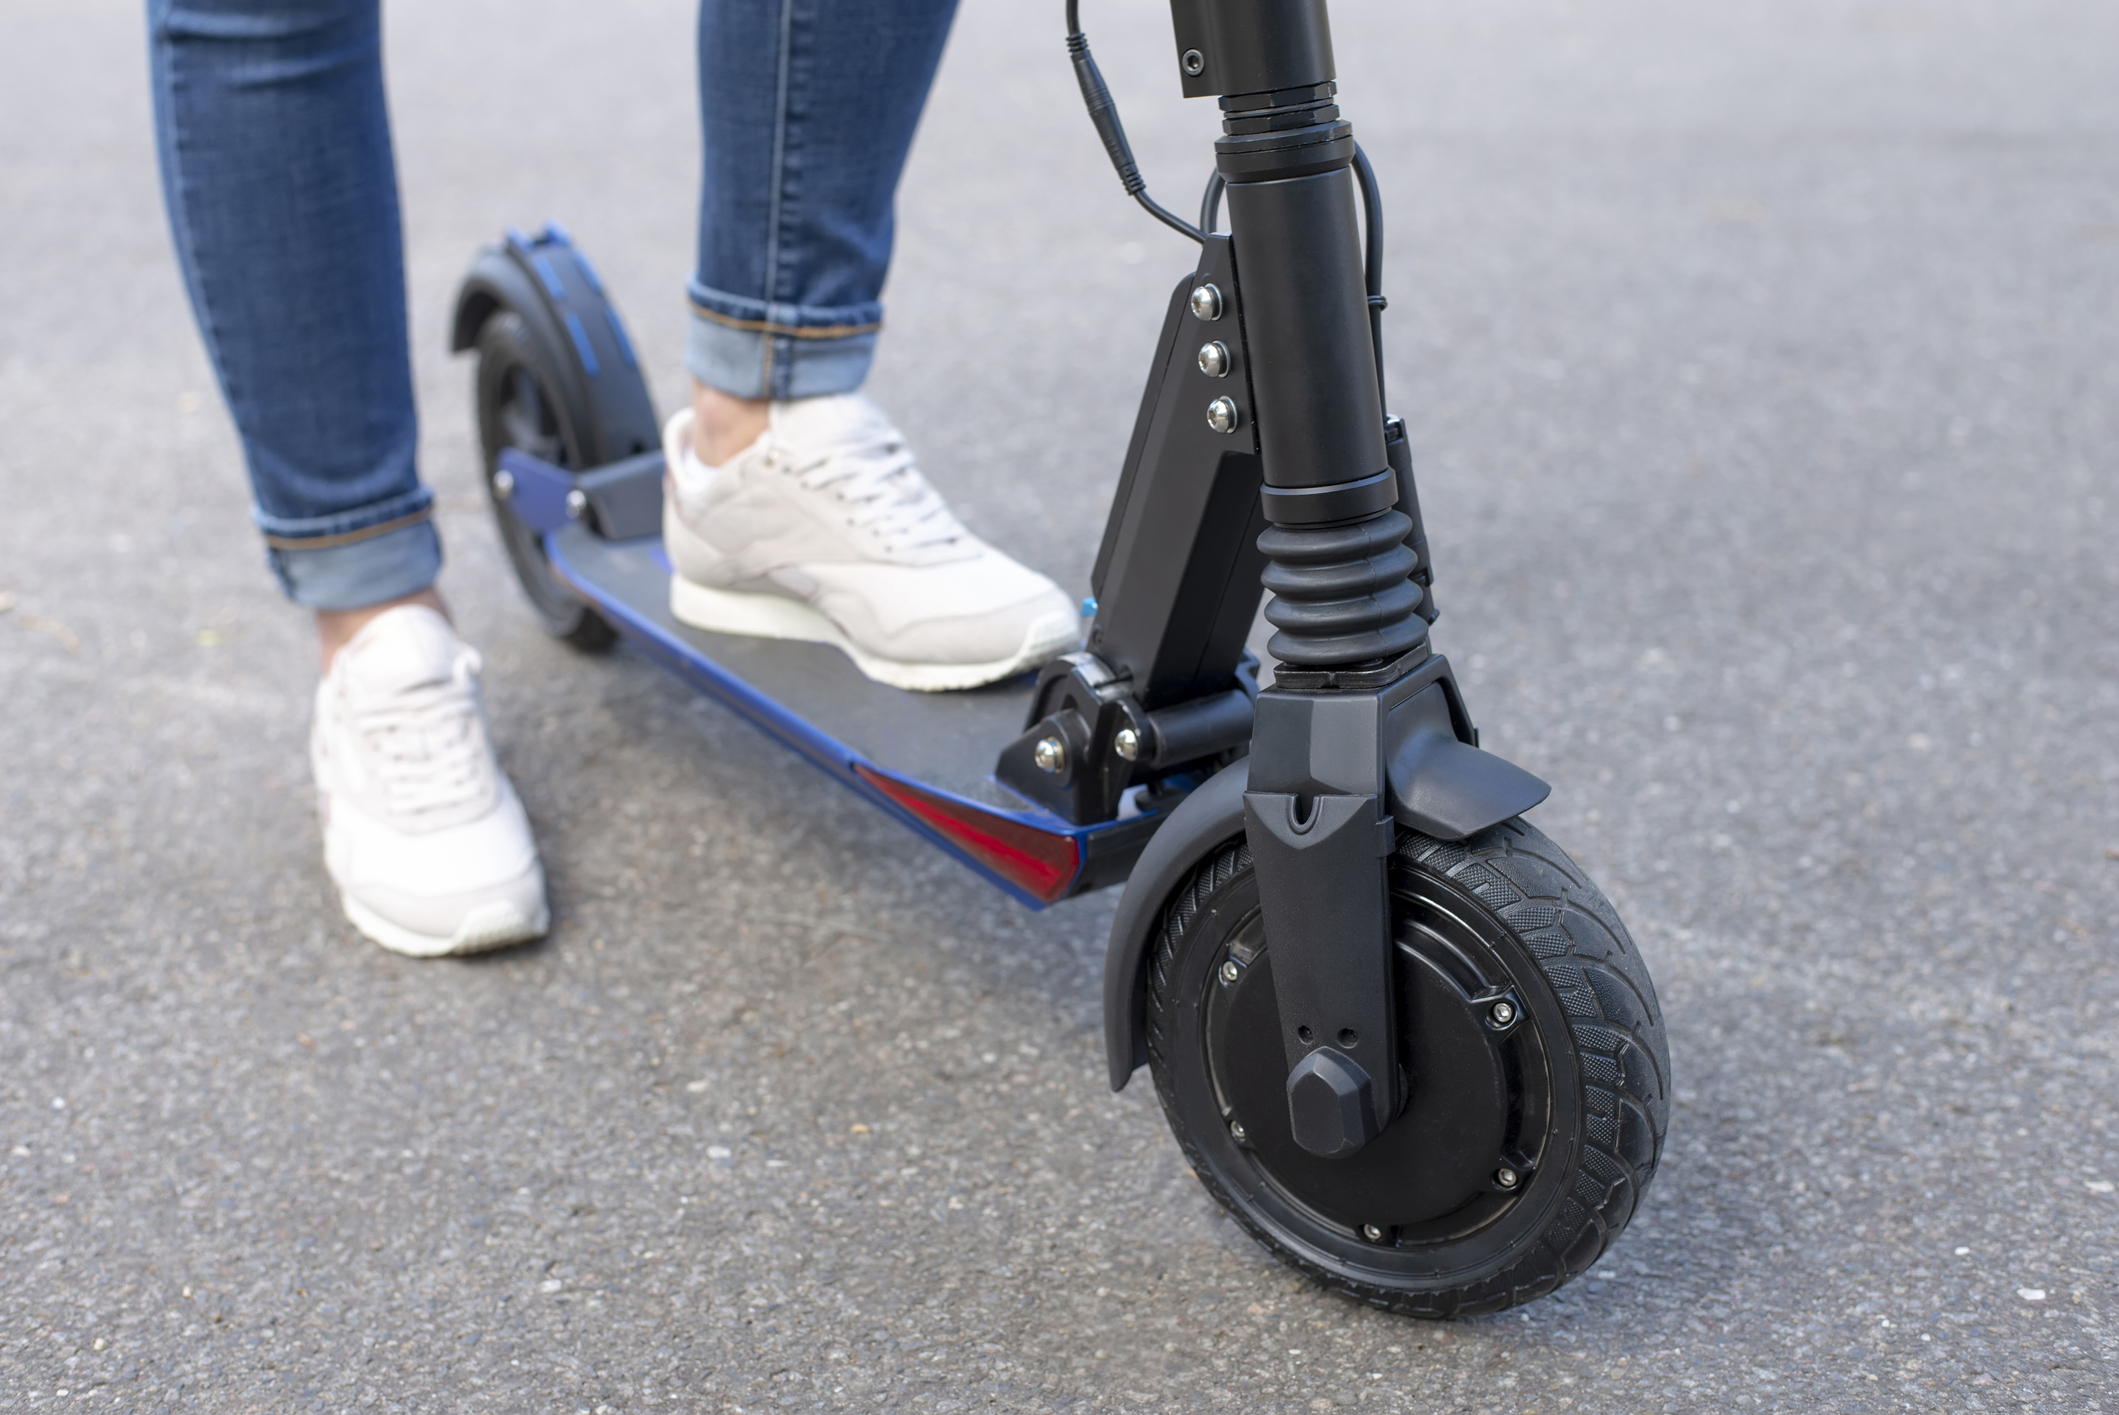 Mum issues warning after son's electric scooter caught fire